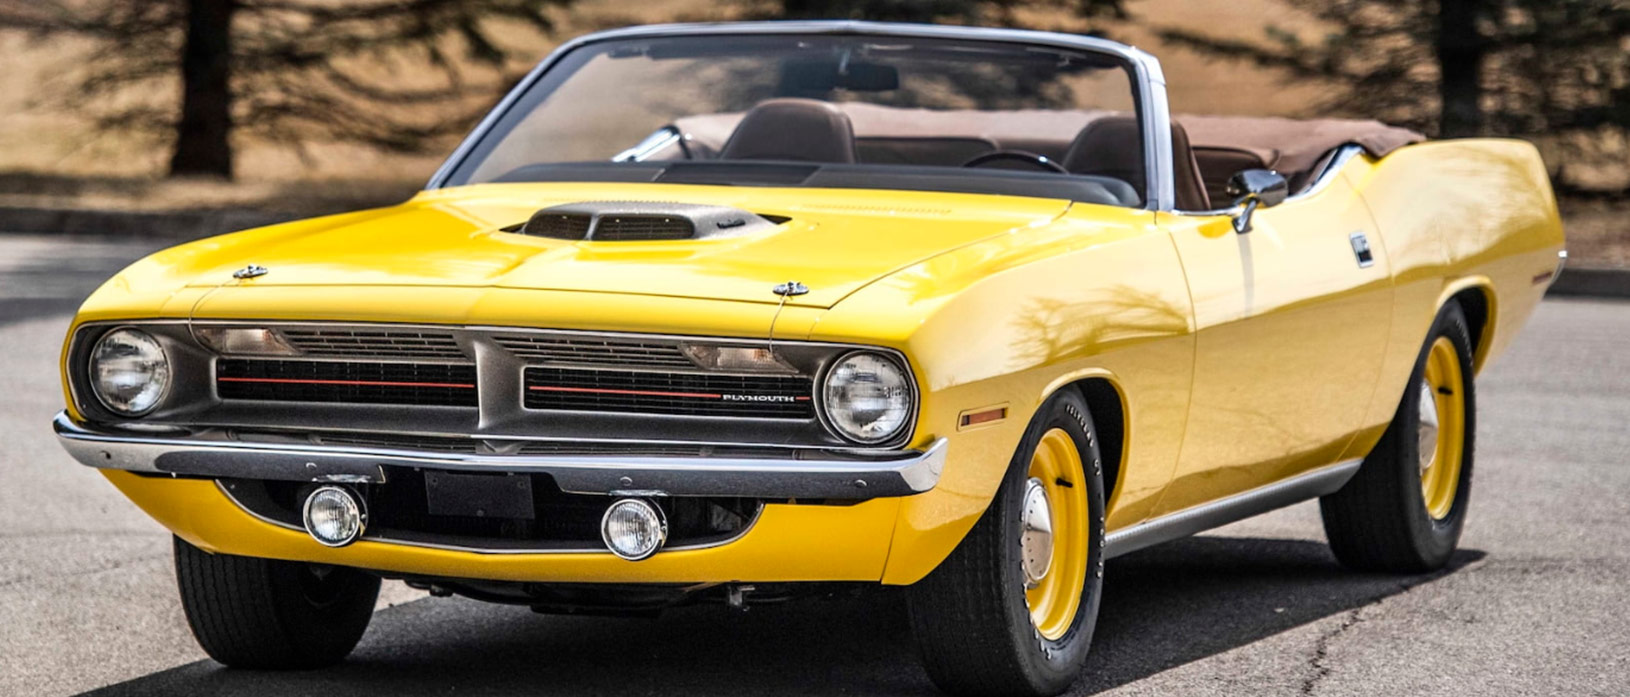 Yellow 1970 Plymouth 'Cuda convertible